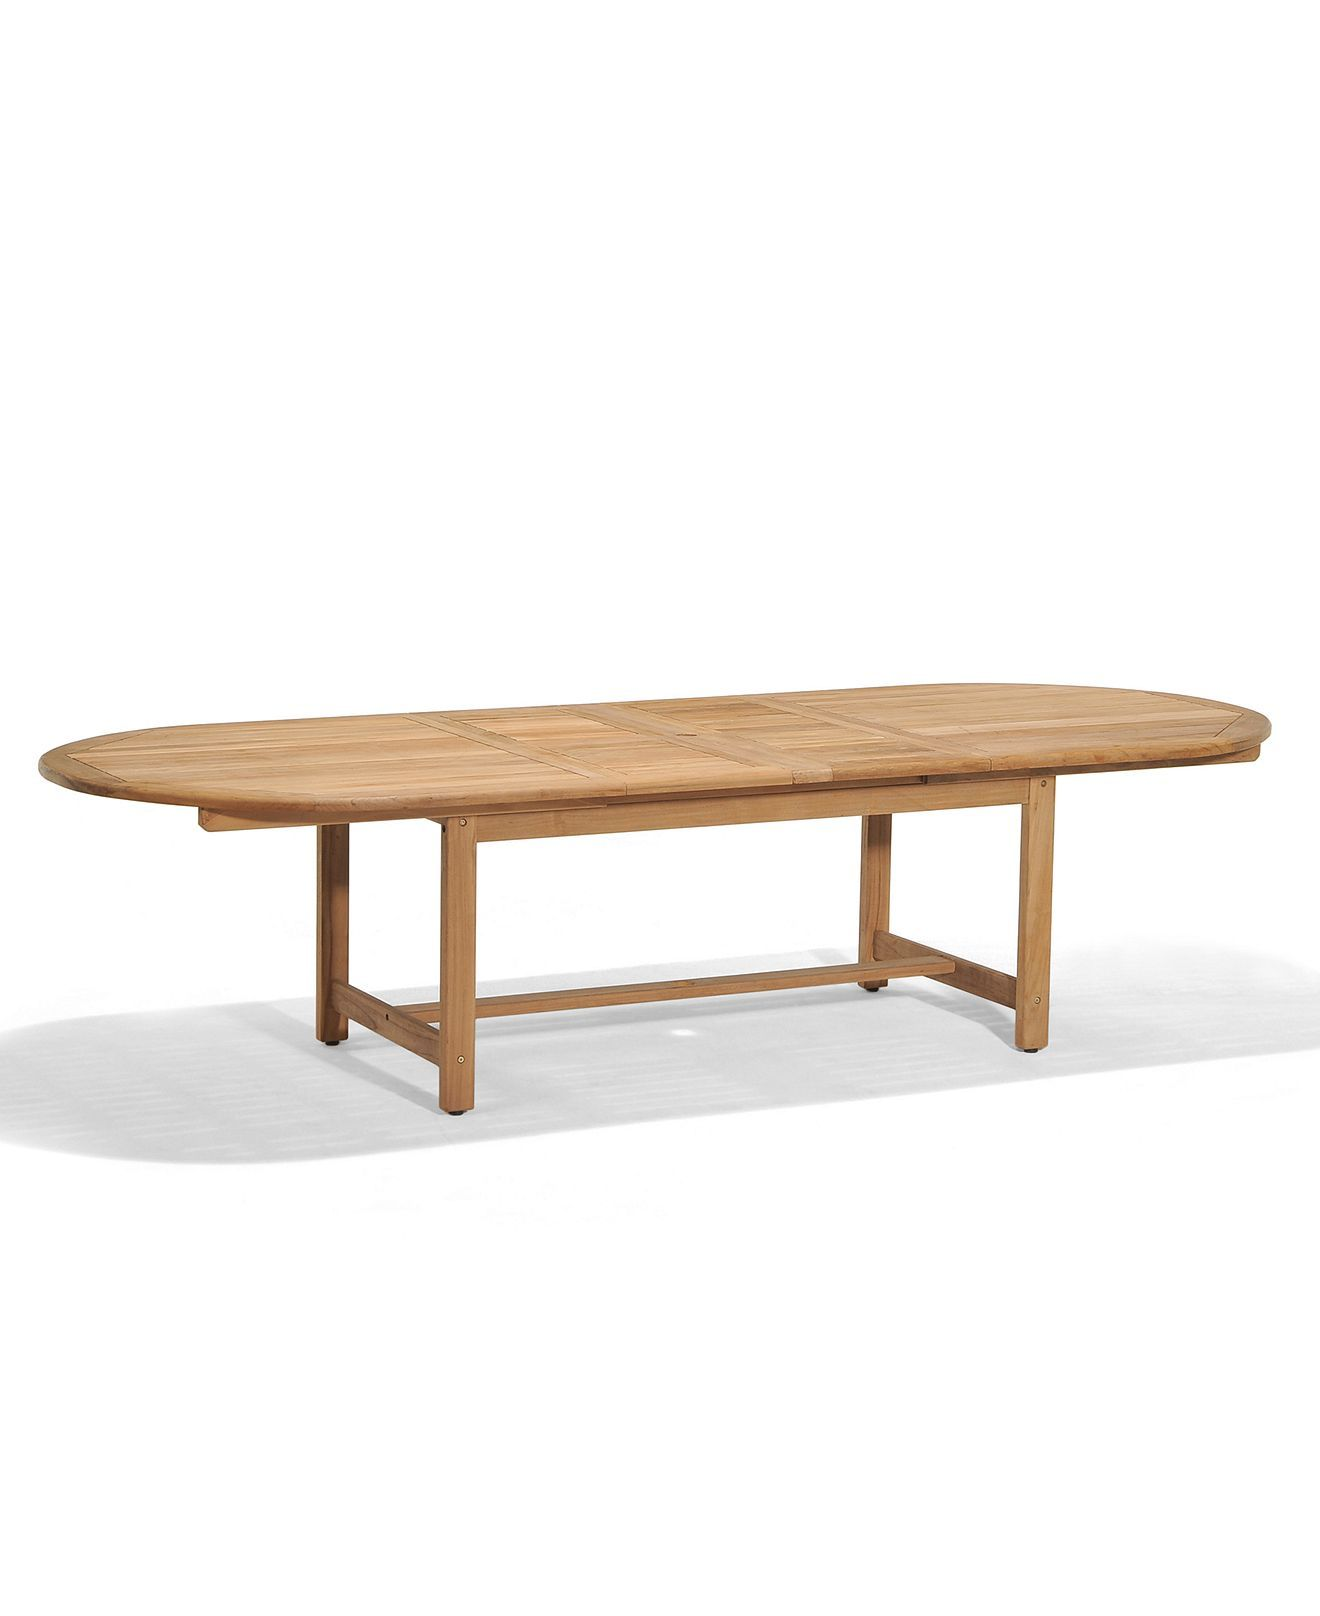 Bristol Teak 118 X 47 Outdoor Extension Dining Table Created For